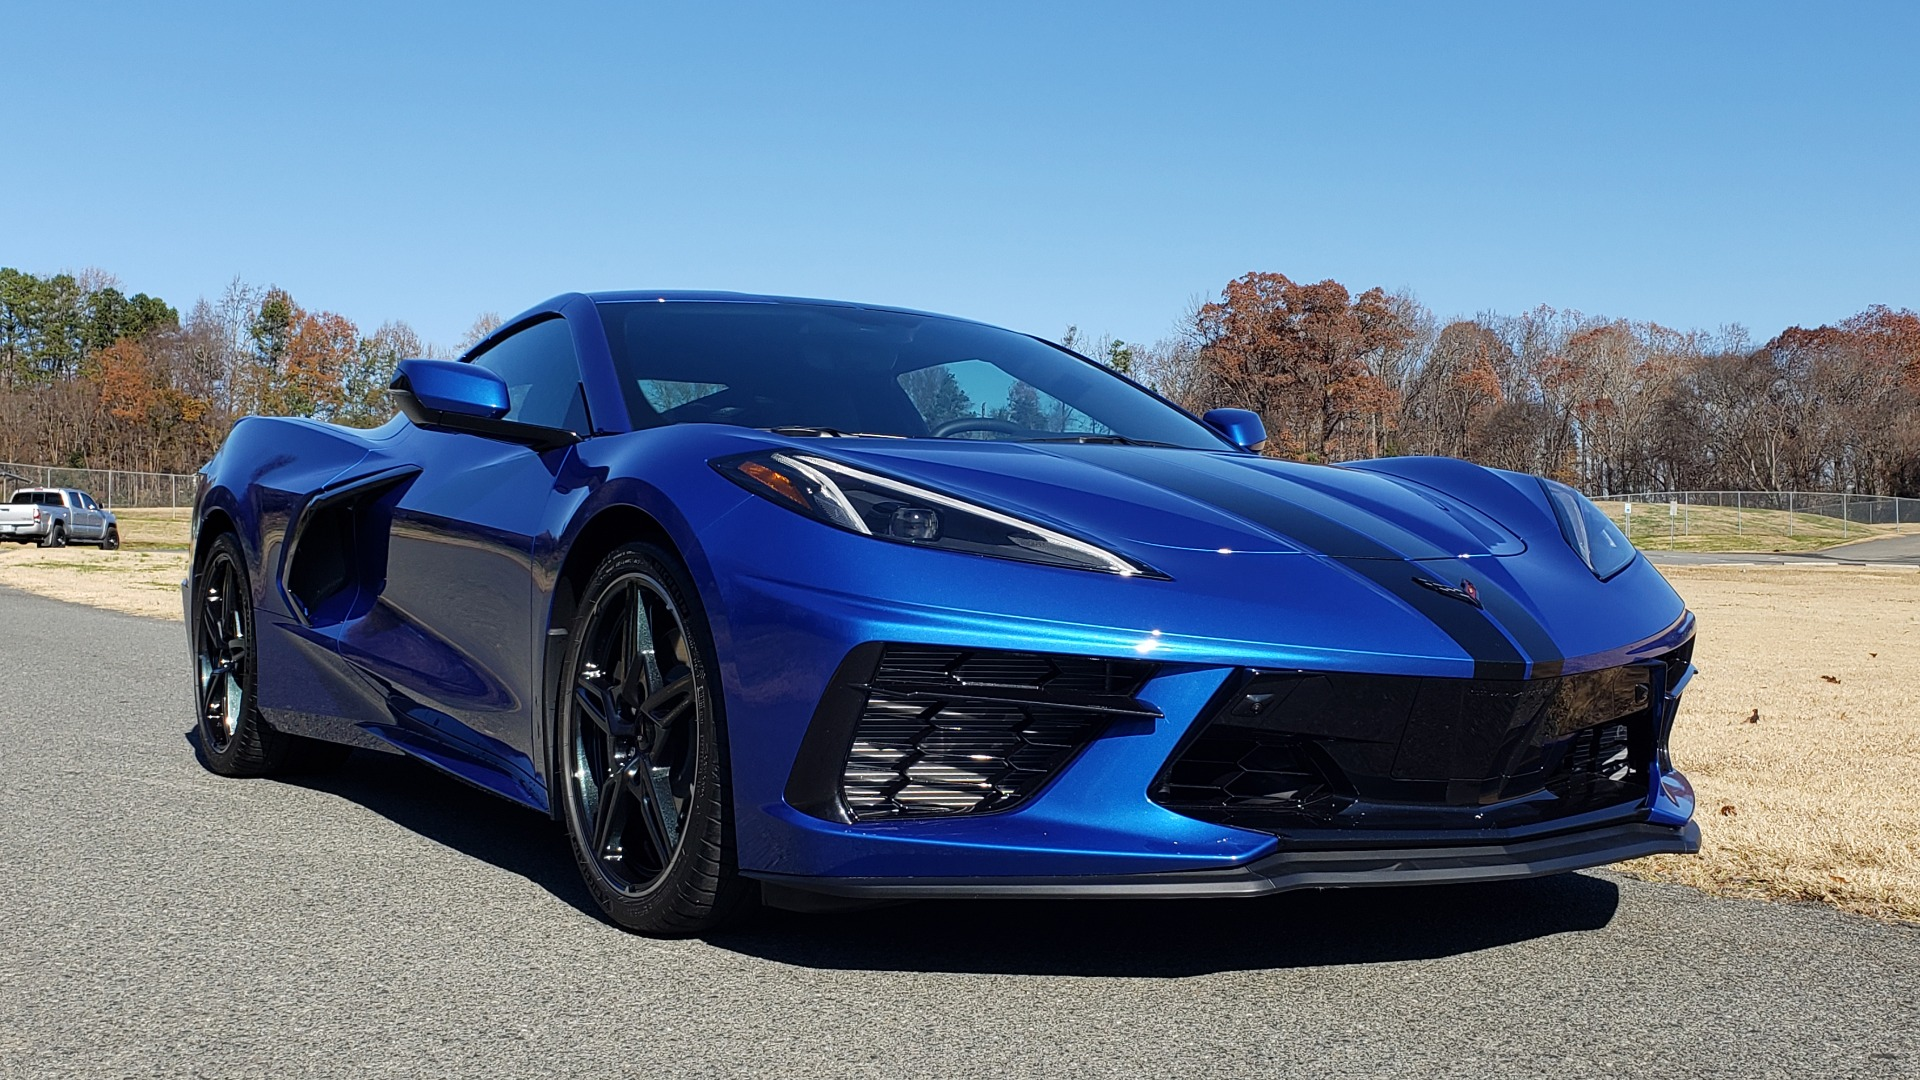 Used 2020 Chevrolet C8 CORVETTE STINGRAY 2LT COUPE / NAV / HUD / BOSE / GT2 SEATS / FRONT LIFT / REARVIEW for sale Sold at Formula Imports in Charlotte NC 28227 13